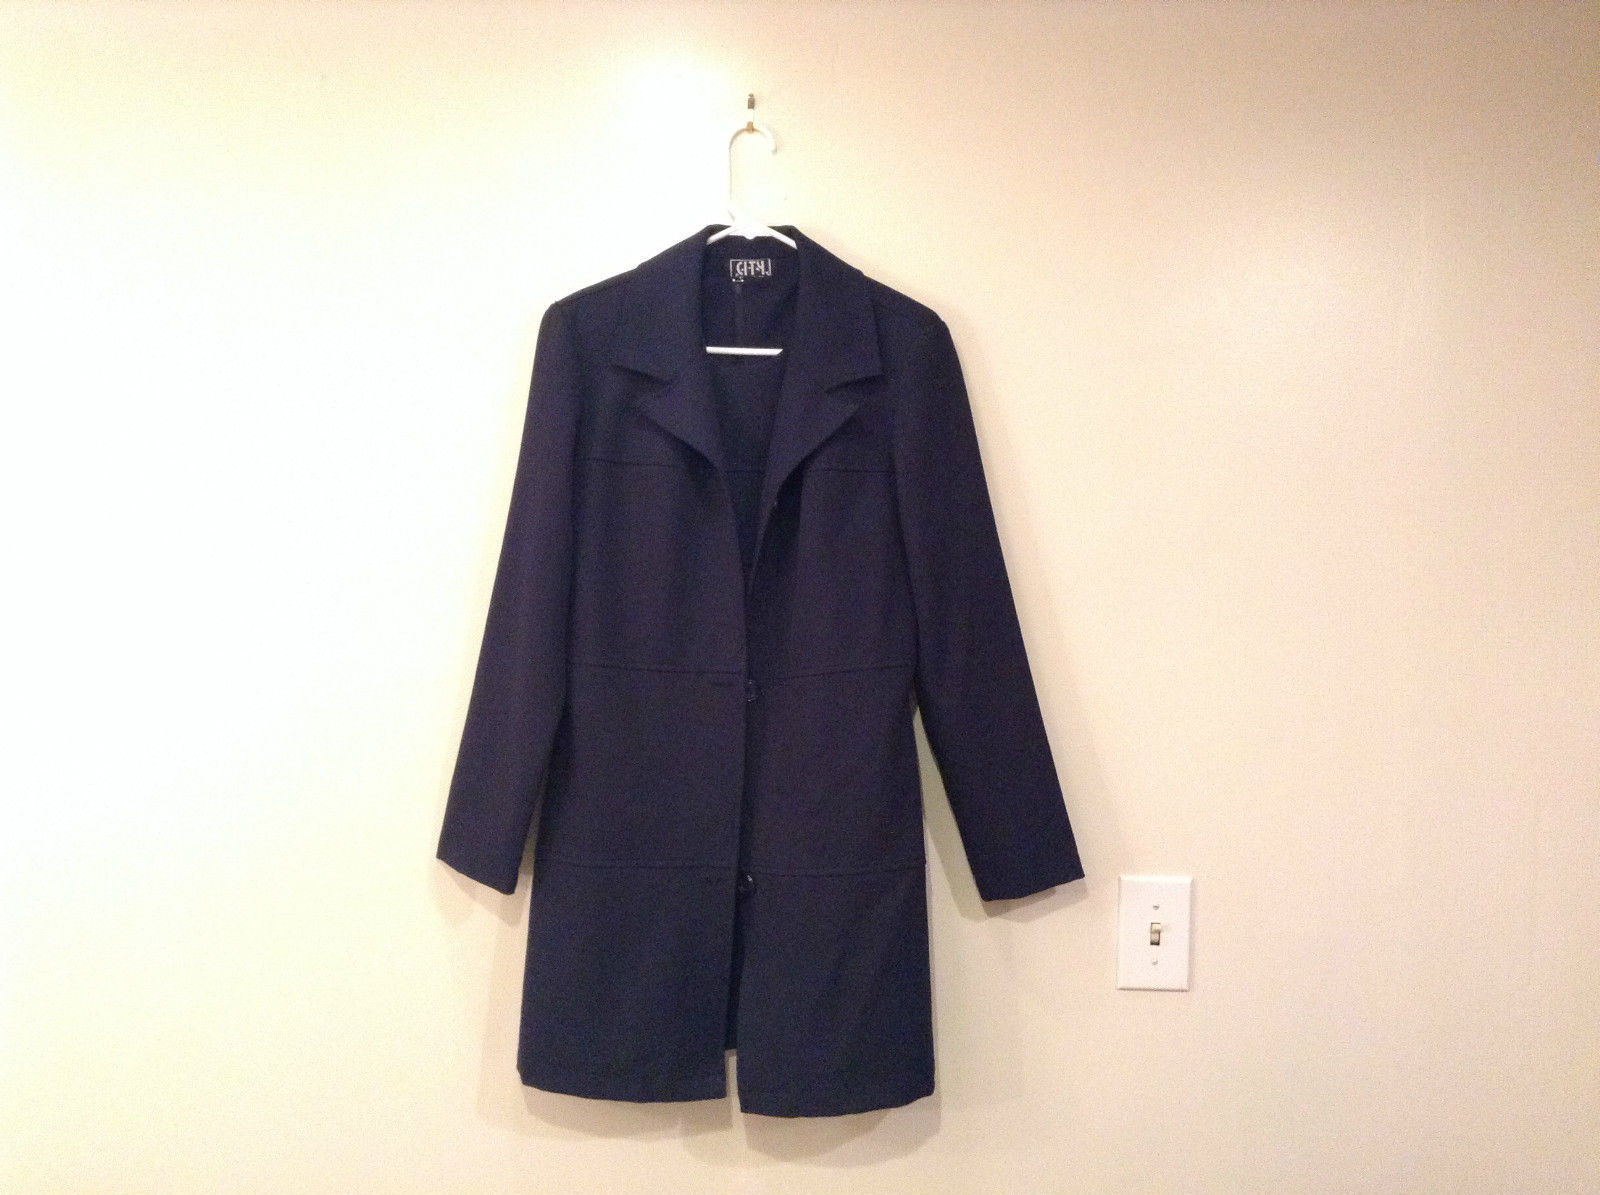 City Triangles Navy Blue Long Sleeve Jacket and Sleeveless Set Dress Size 11